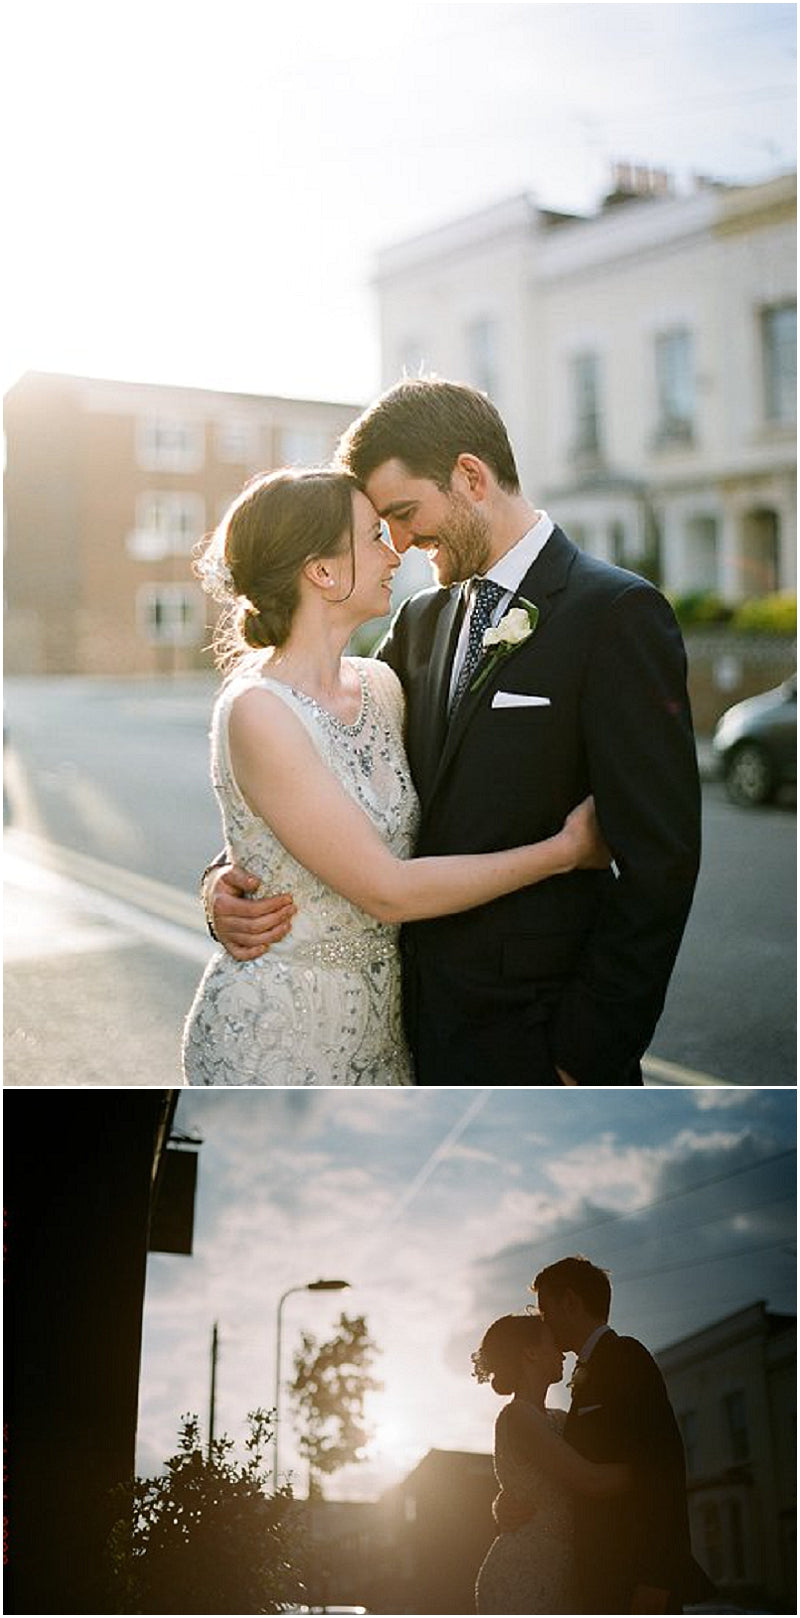 Cutest Couple Ellie and James at their London Wedding